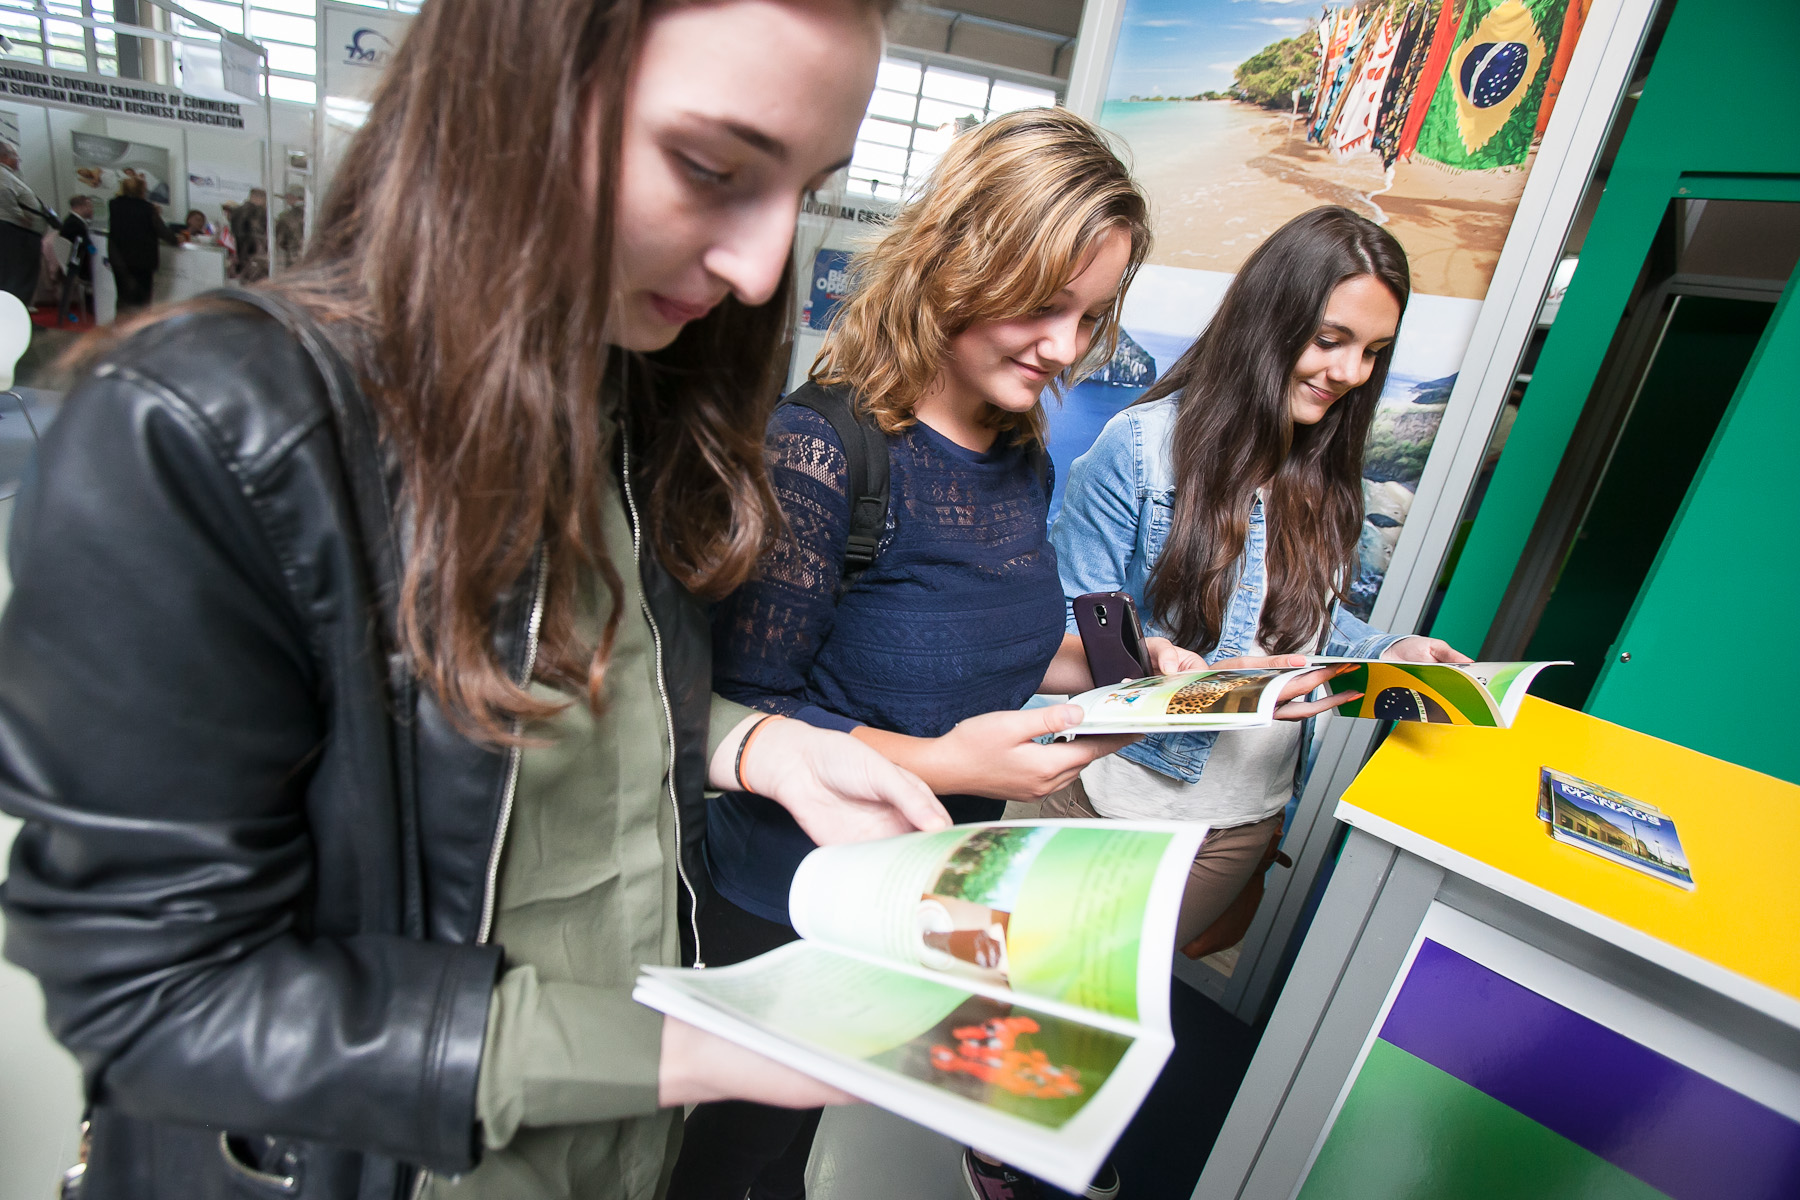 Visitors browse through catalogues of Brasil at the 48th International Trade Fair in Celje, Slovenia, Sep. 8, 2015.